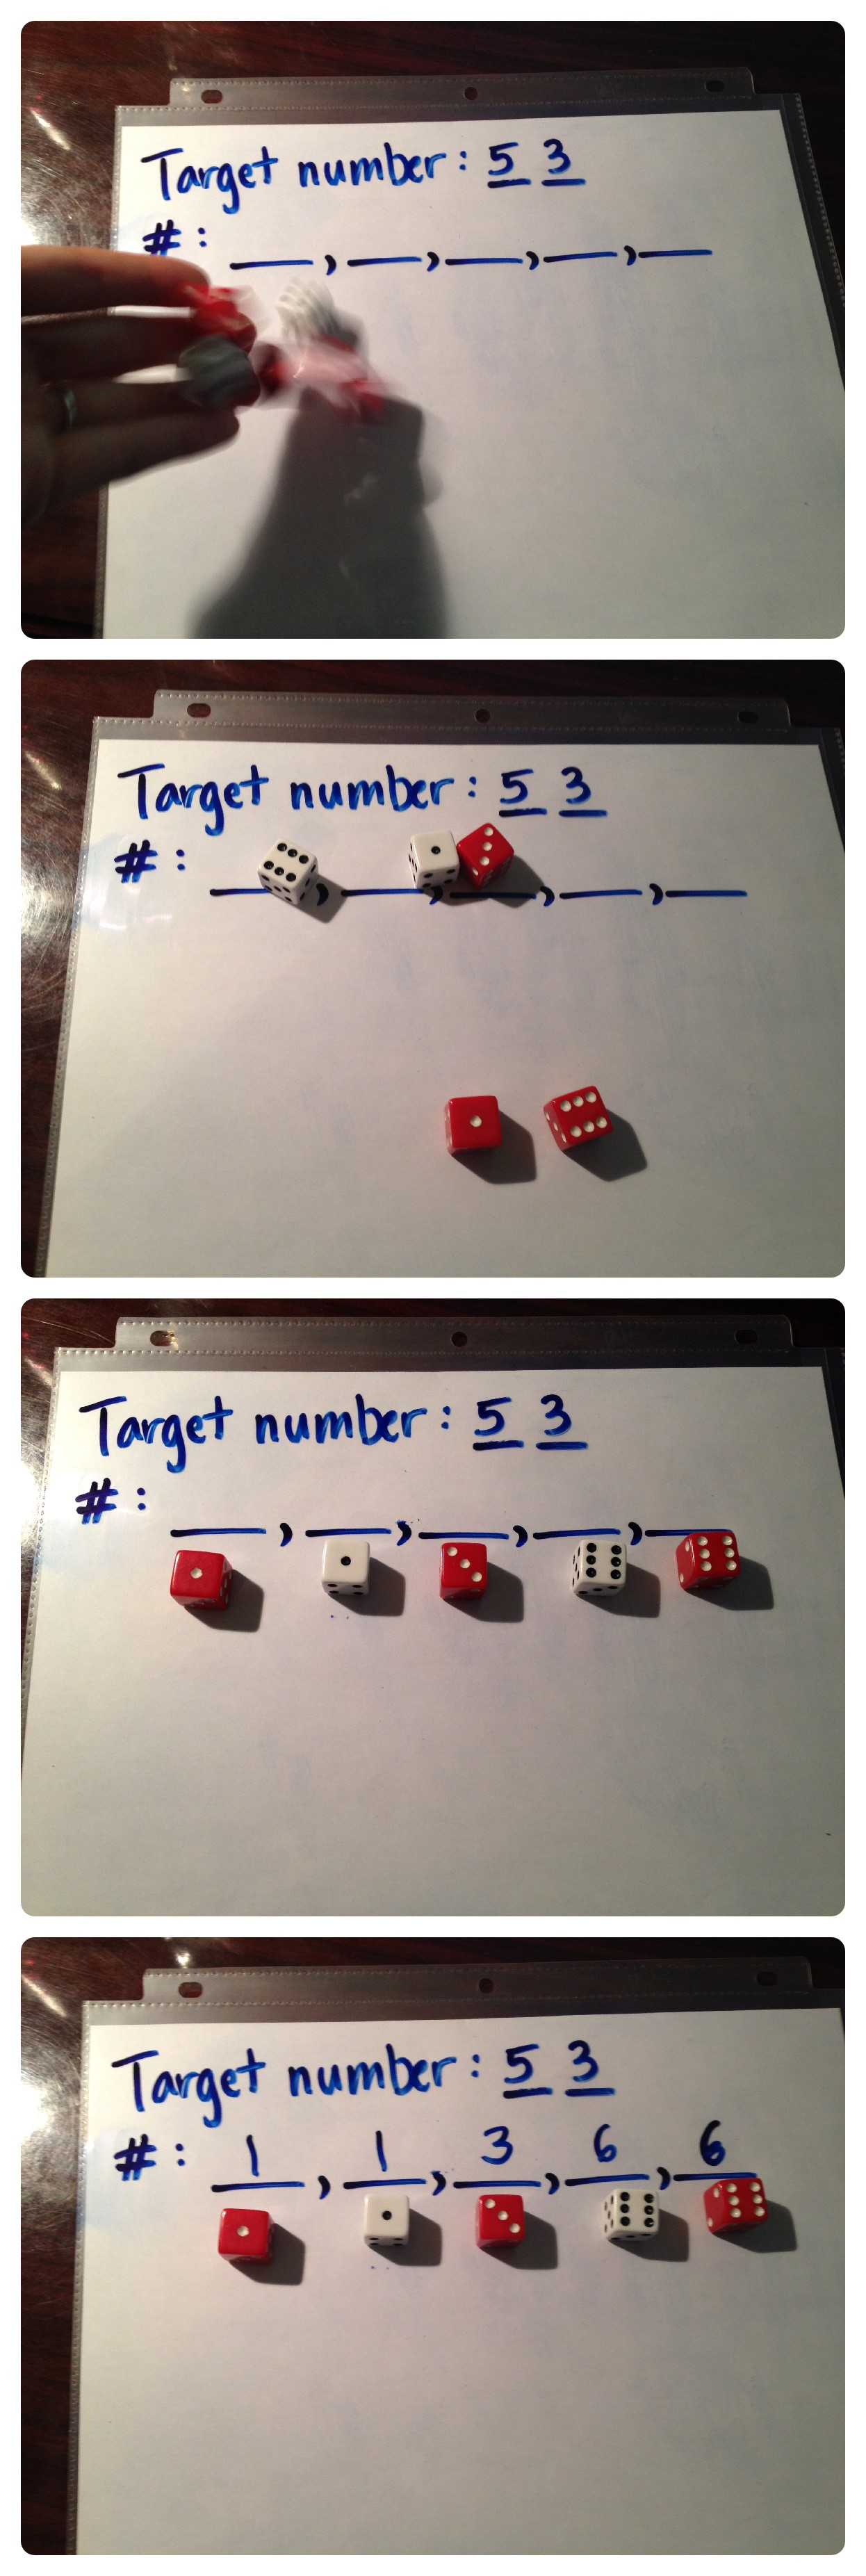 Roll the dice to find the 5 numbers to use